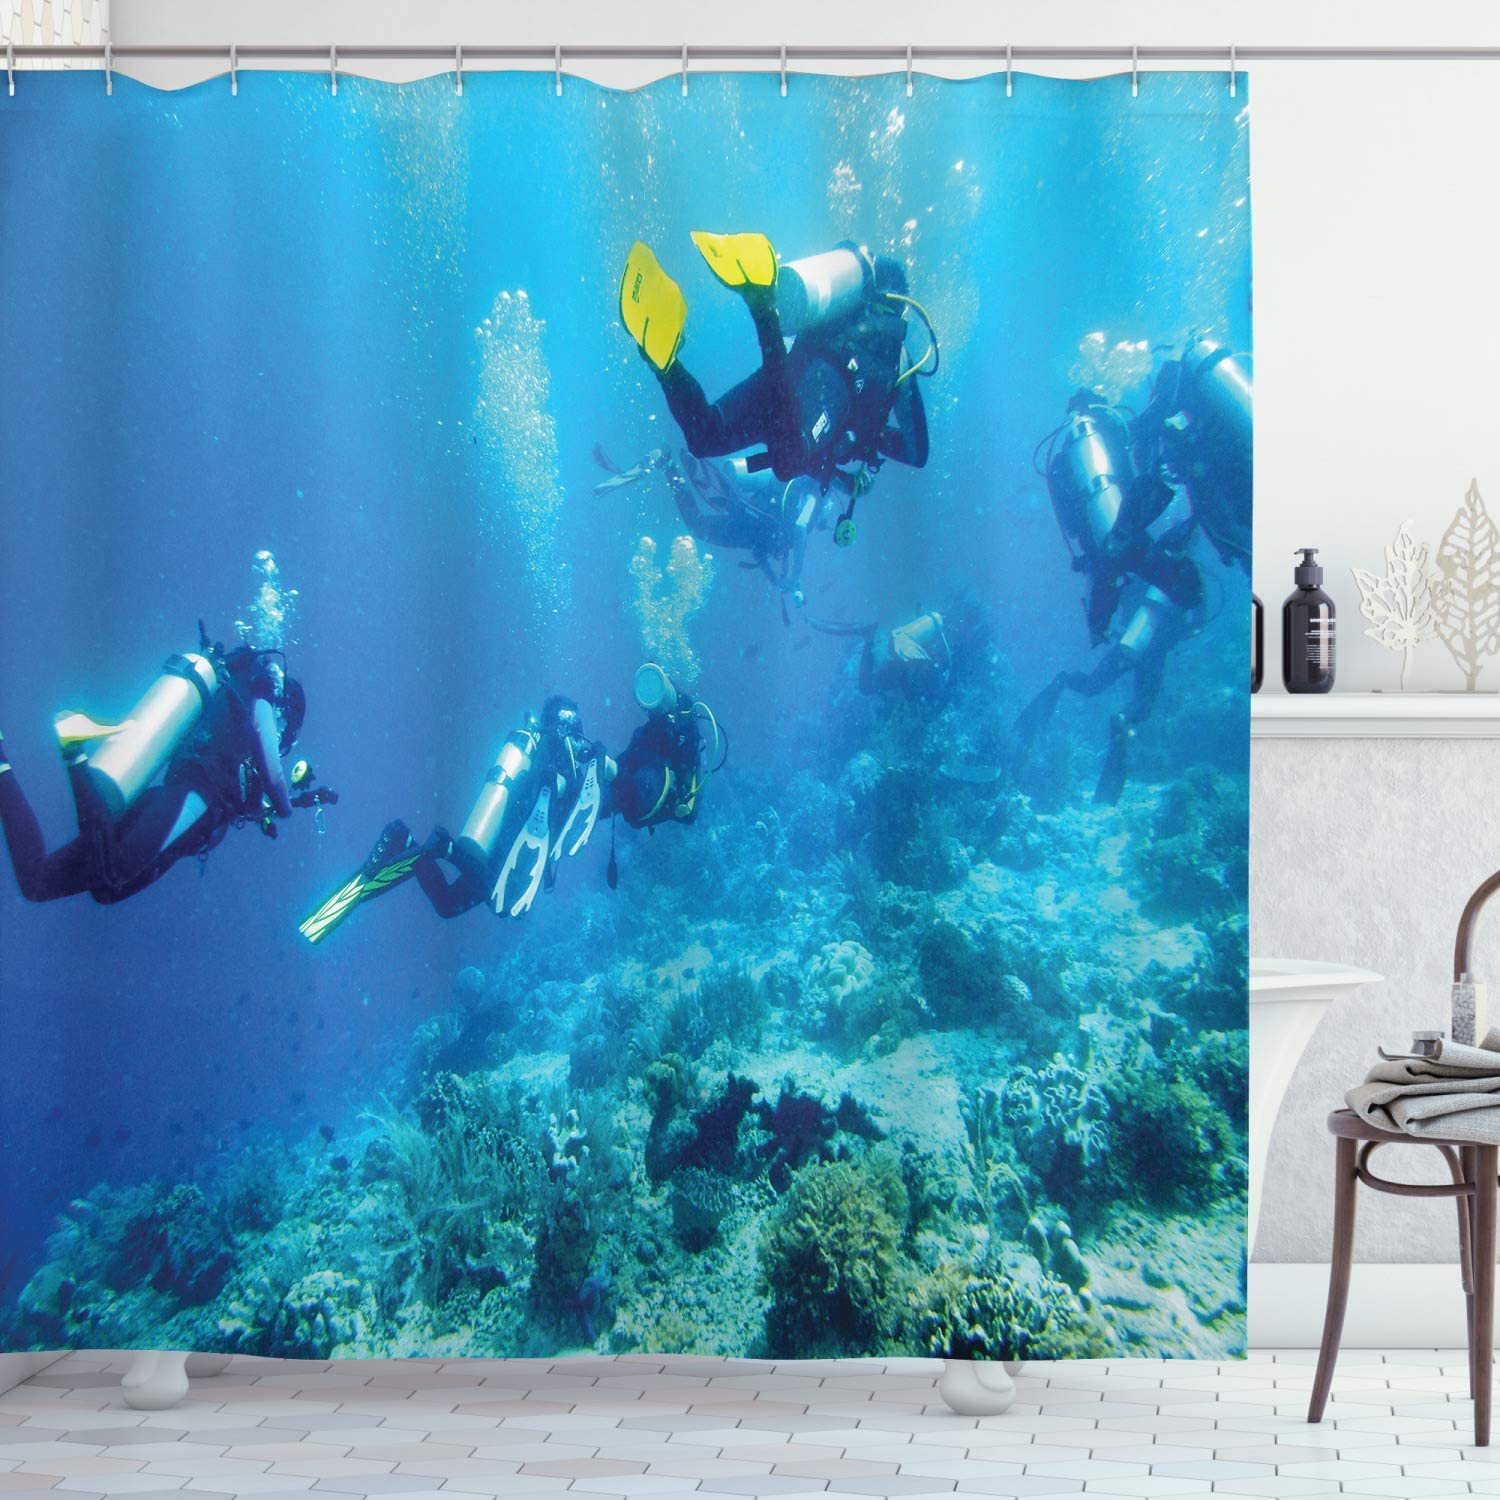 Ambesonne Ocean Shower Curtain, Scuba Diver in Ocean with Stones Rocks Fish Moss and Bubbles Art Photo, Cloth Fabric Bathroom Decor Set with Hooks, 70